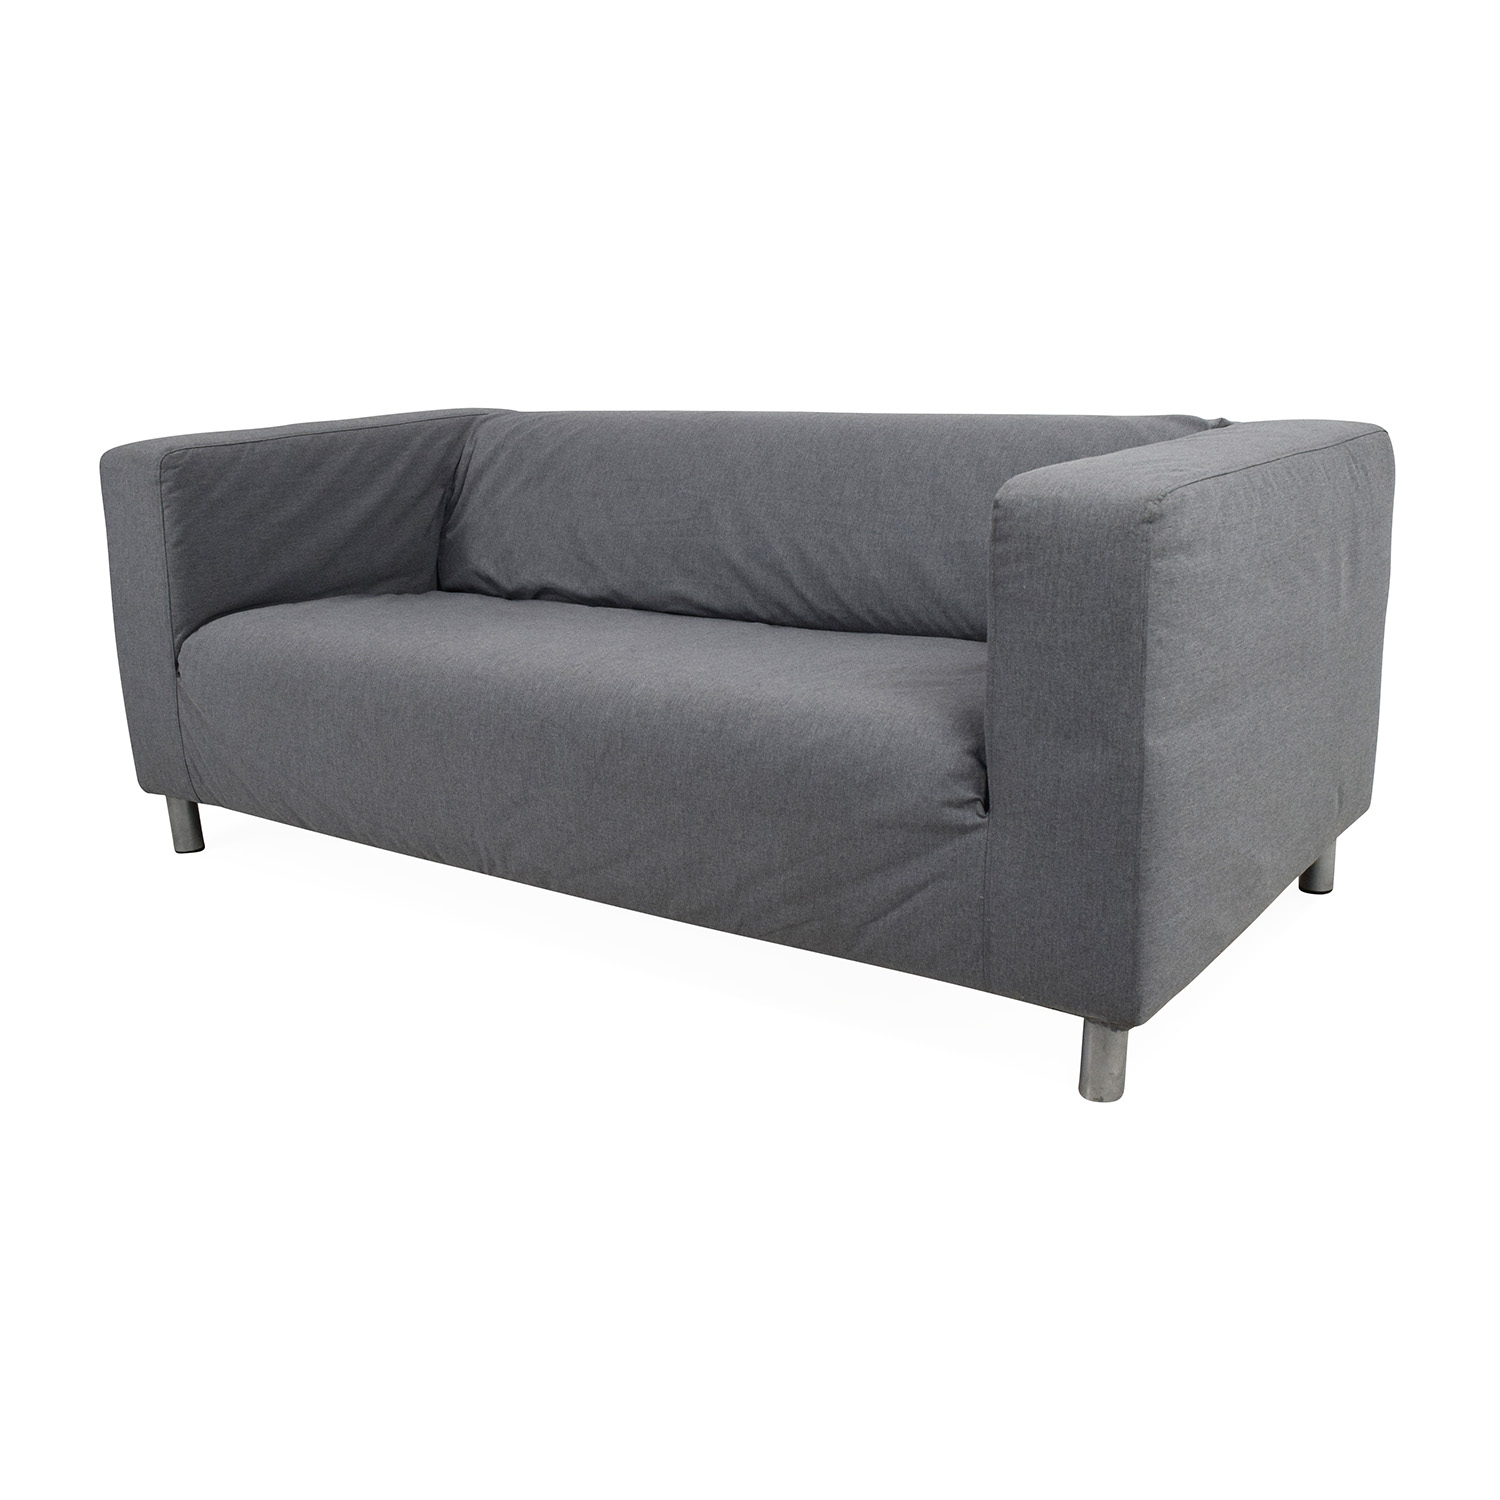 50 off ikea ikea klippan gray loveseat sofas. Black Bedroom Furniture Sets. Home Design Ideas